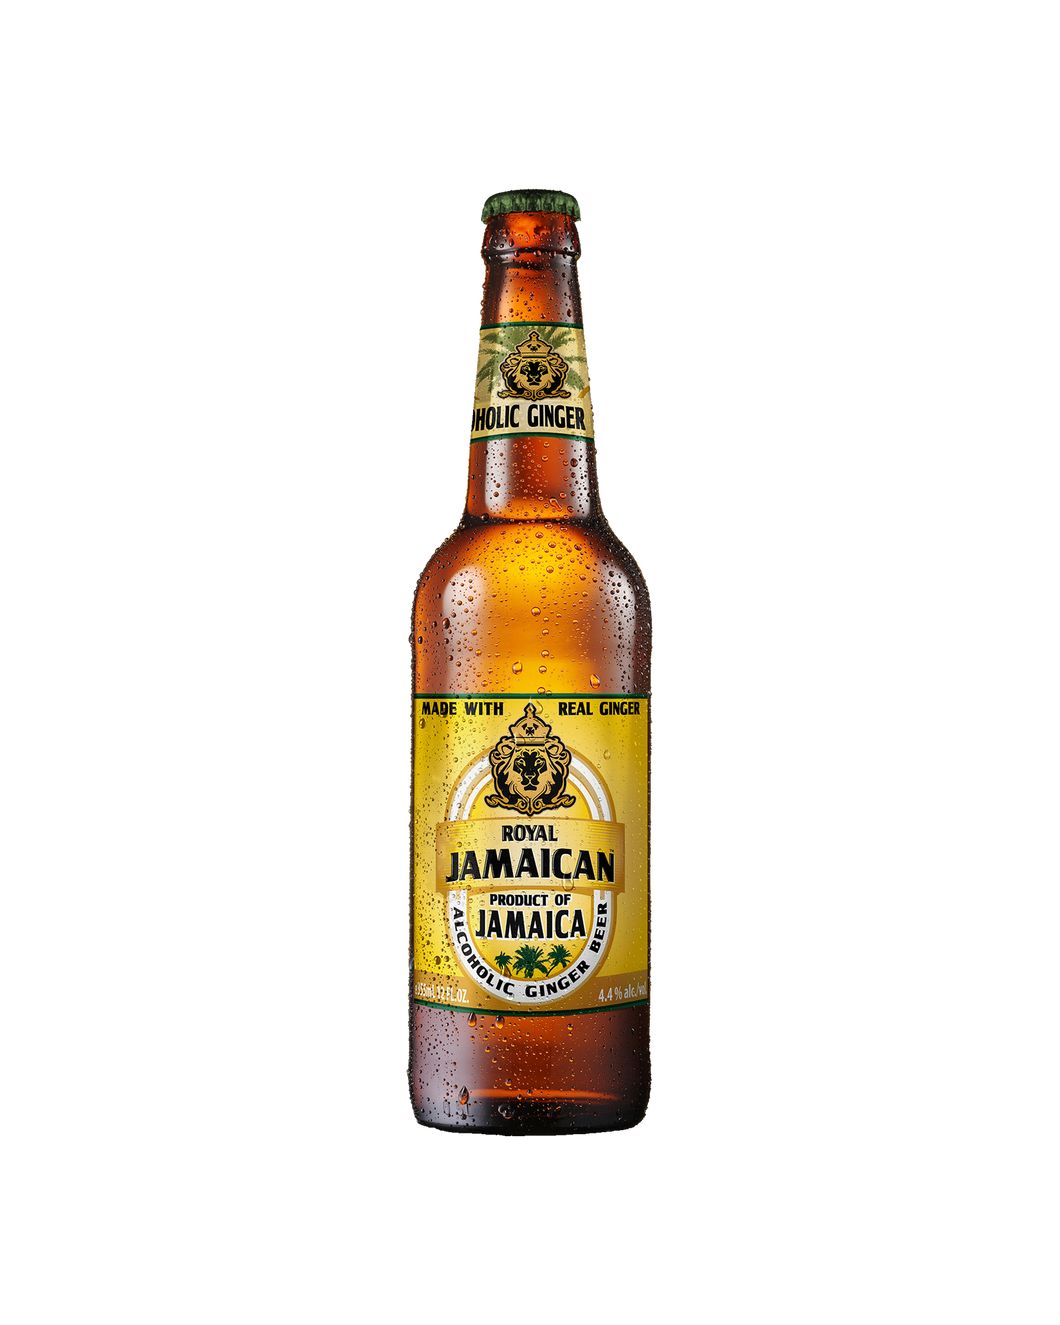 Royal Jamaican non alcoholic ginger beer